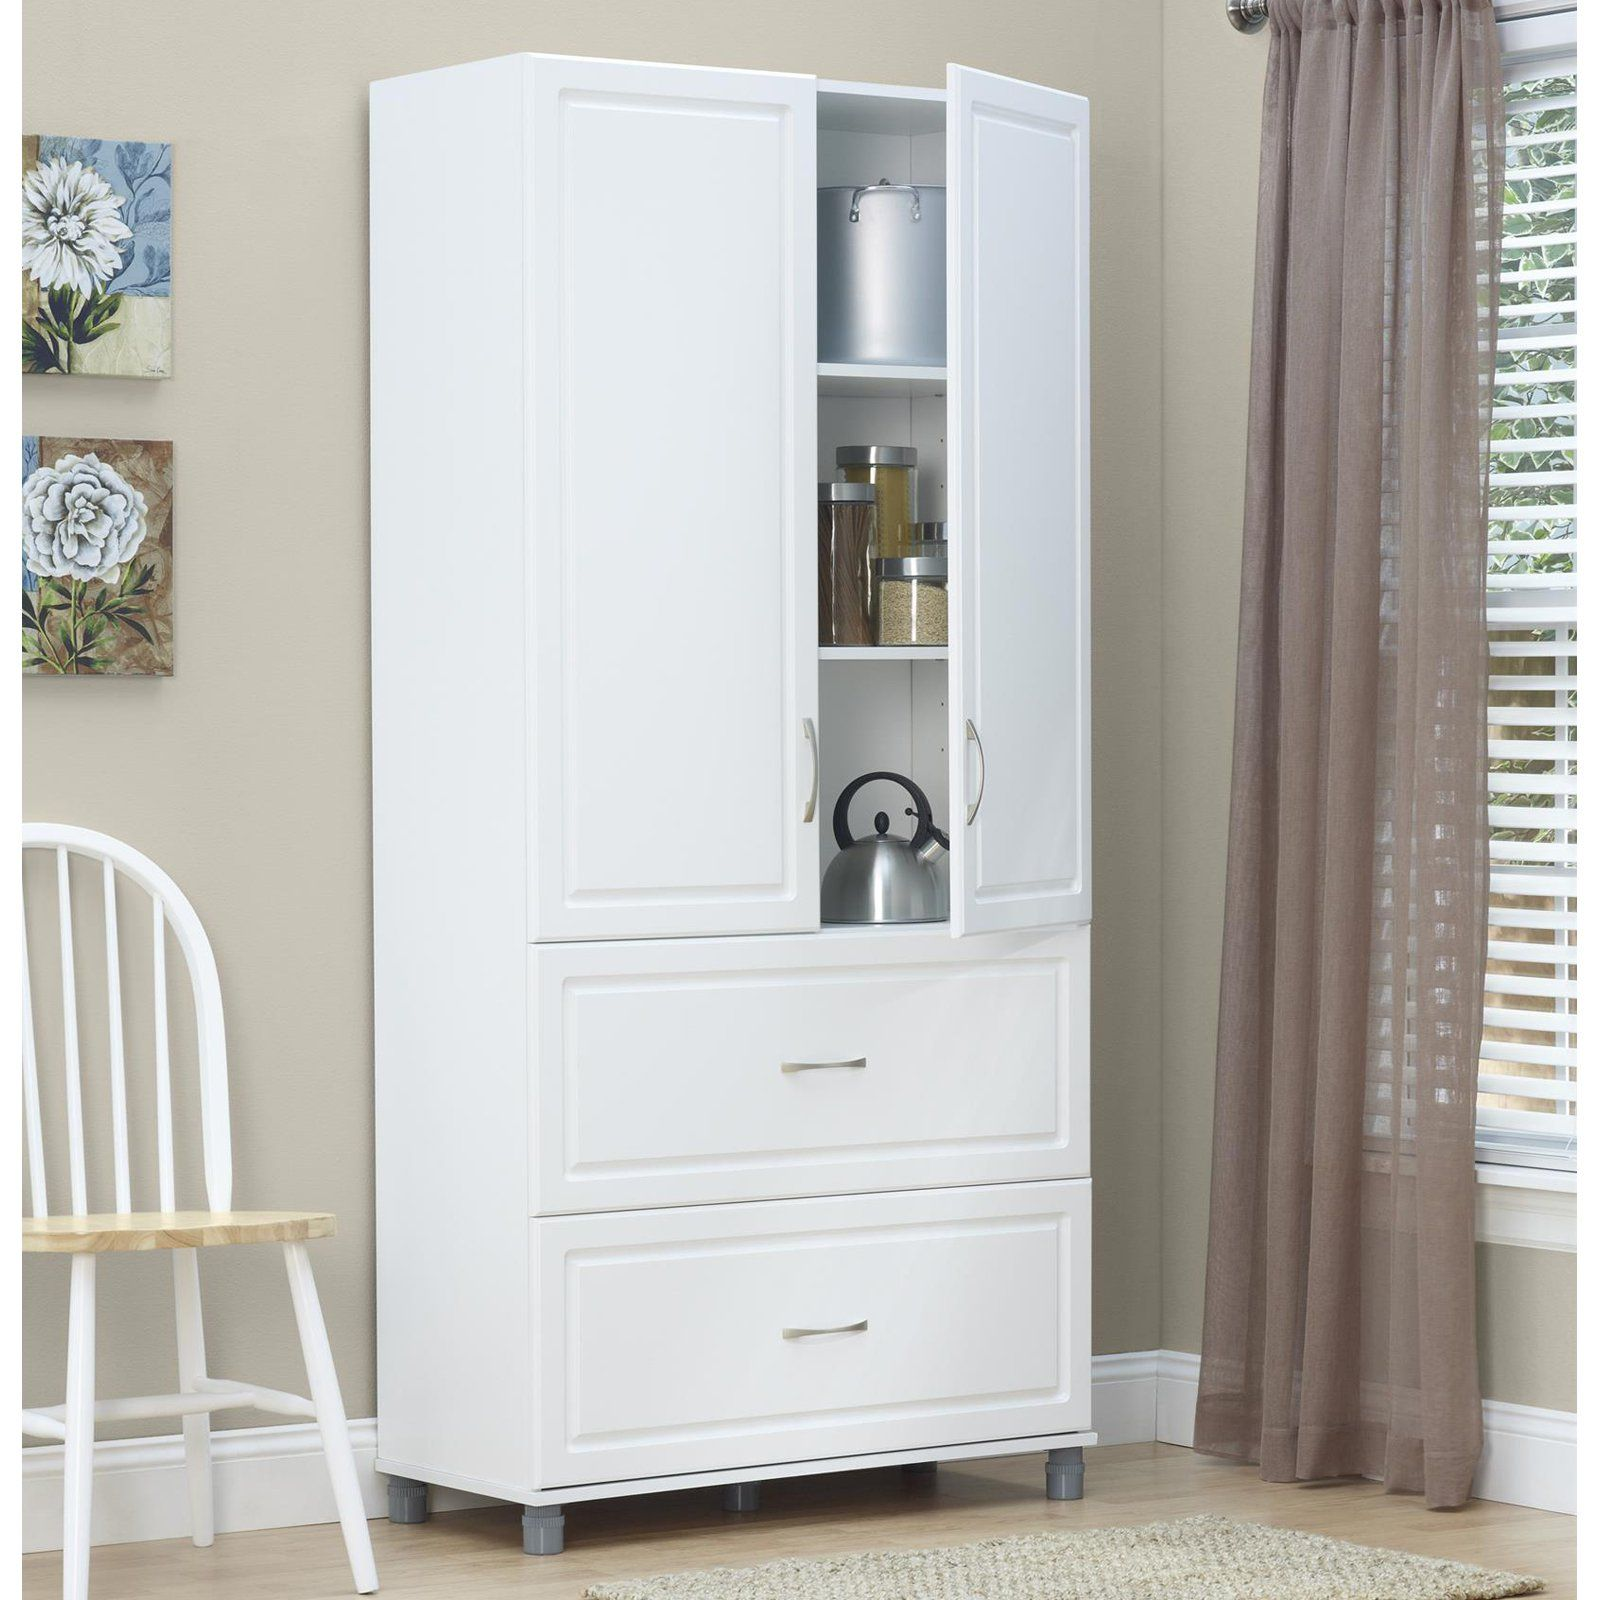 System Build 2 Door Utility Pantry Storage Cabinet Pantry